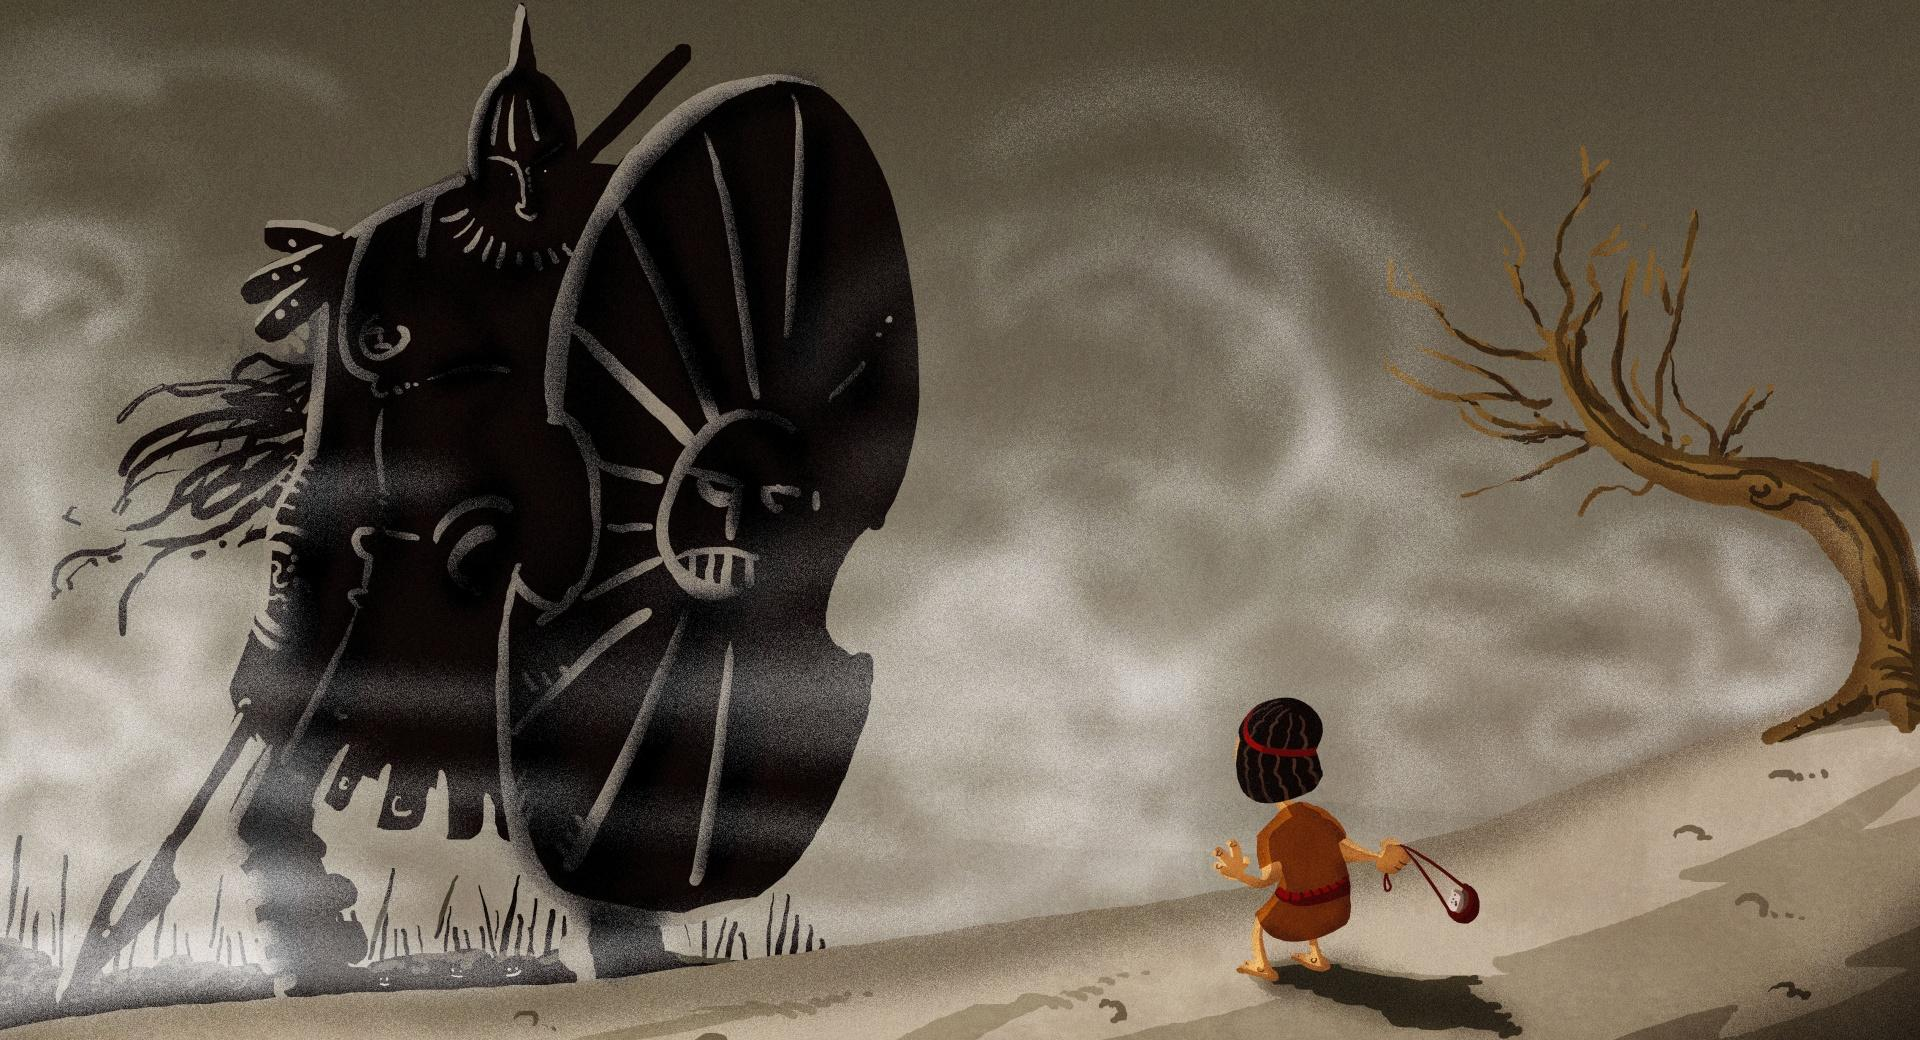 David And Goliath wallpapers HD quality